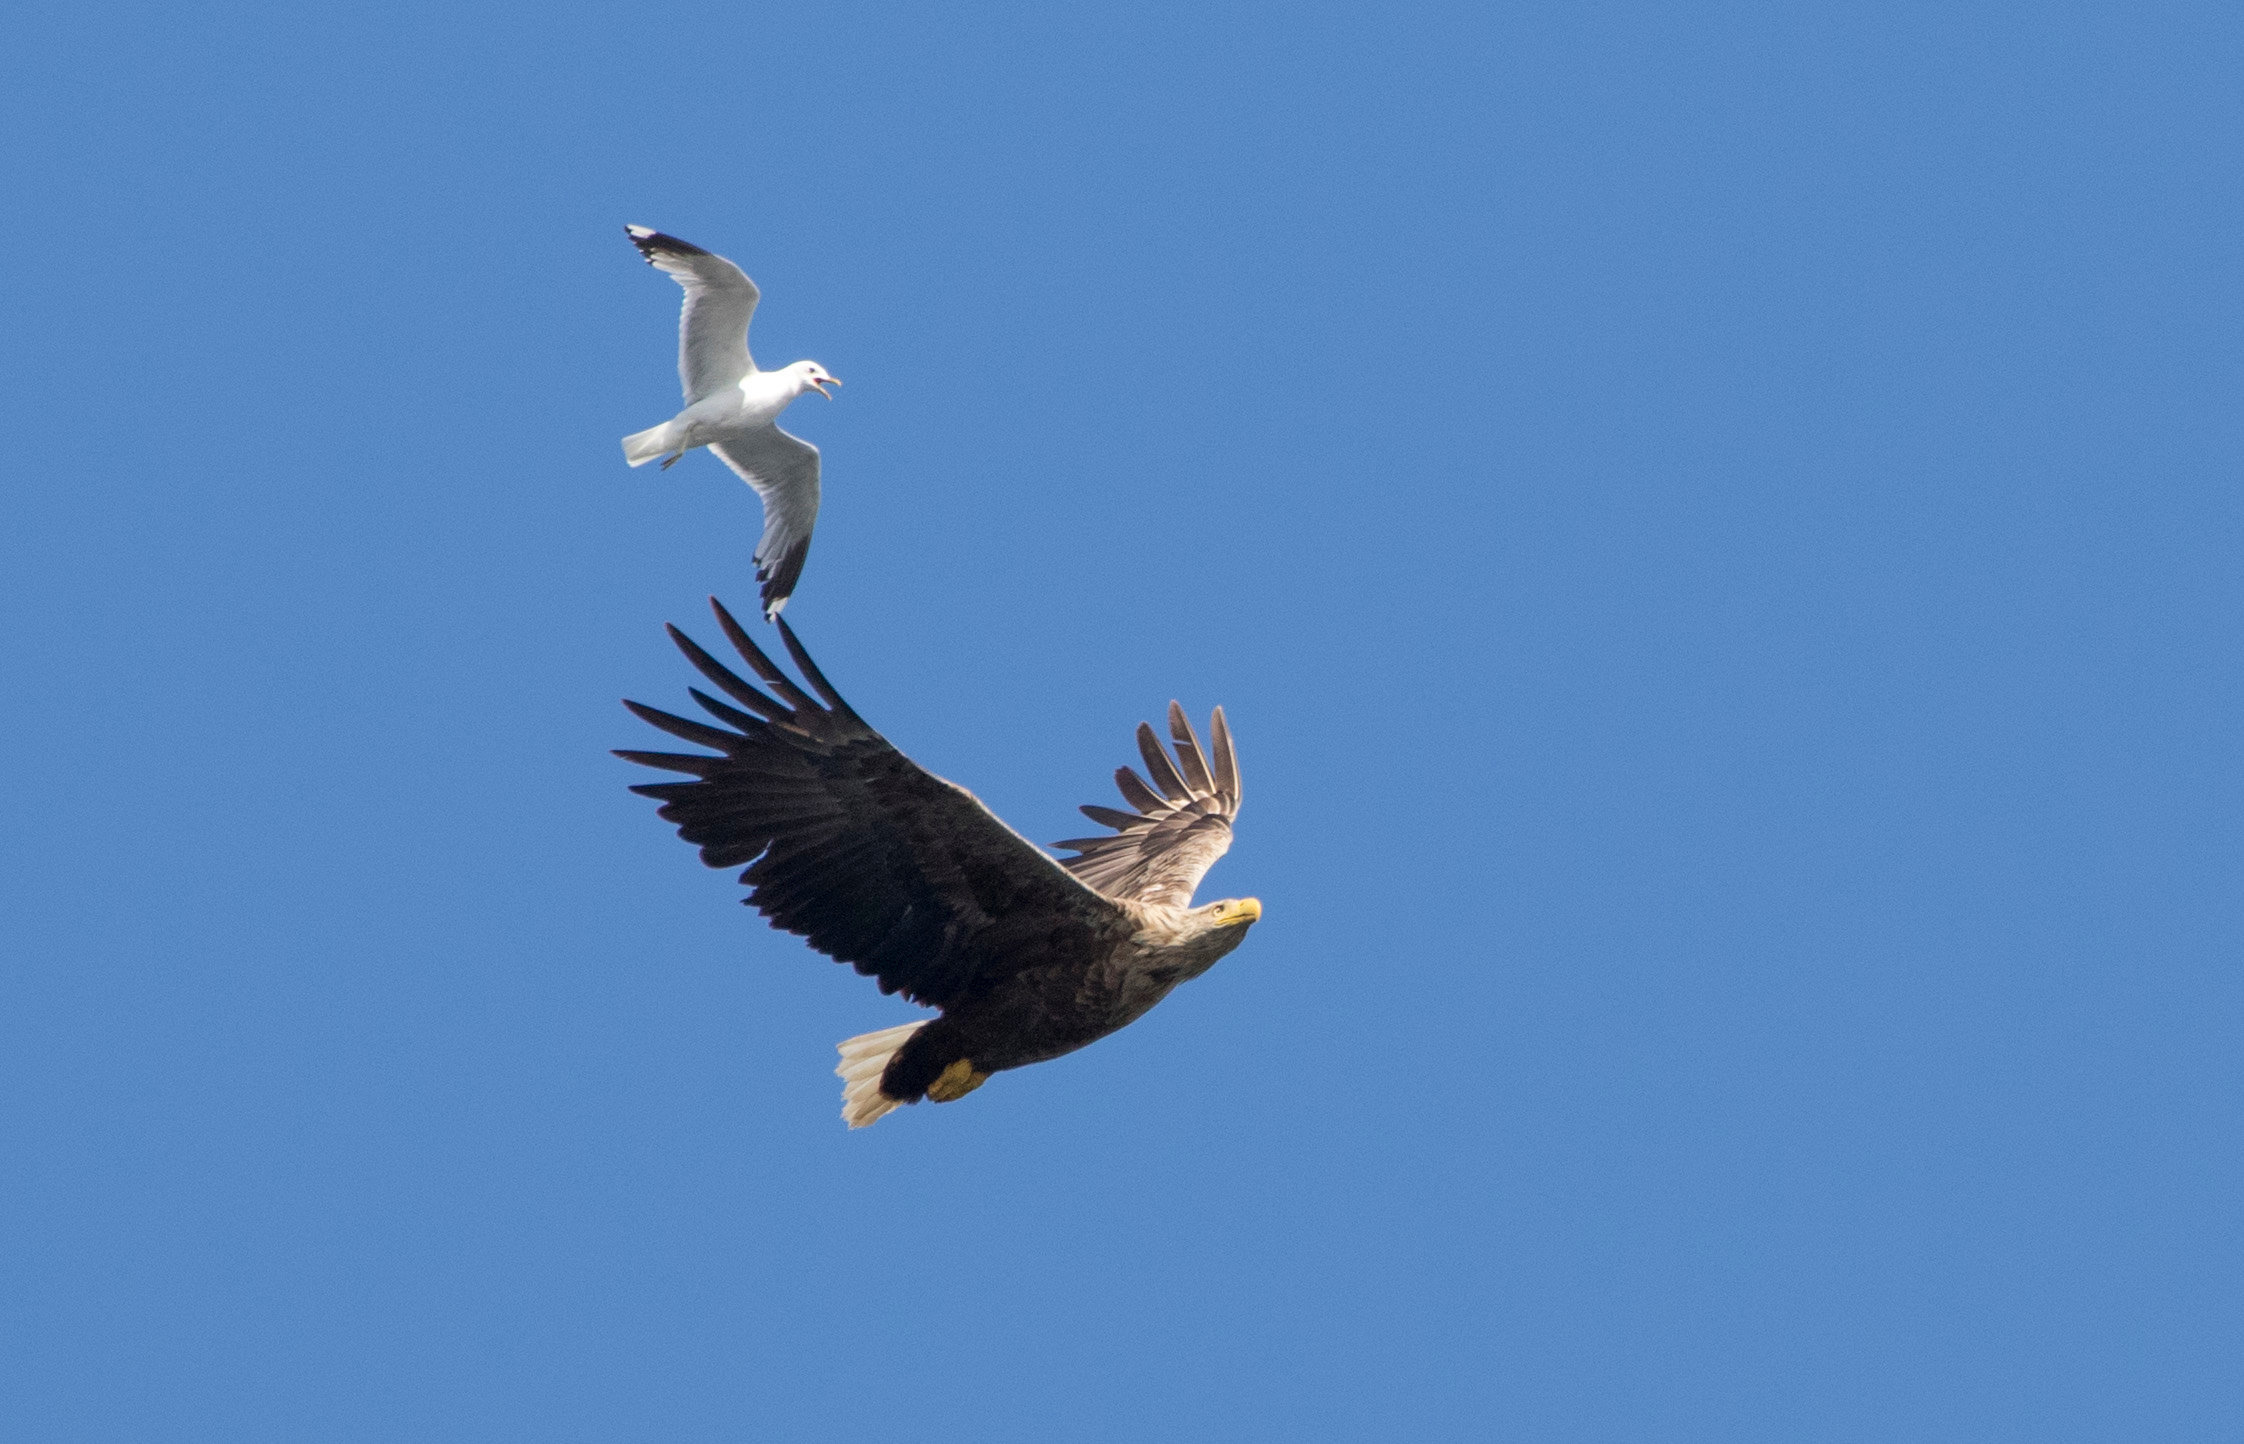 White-tailed eagle and gull